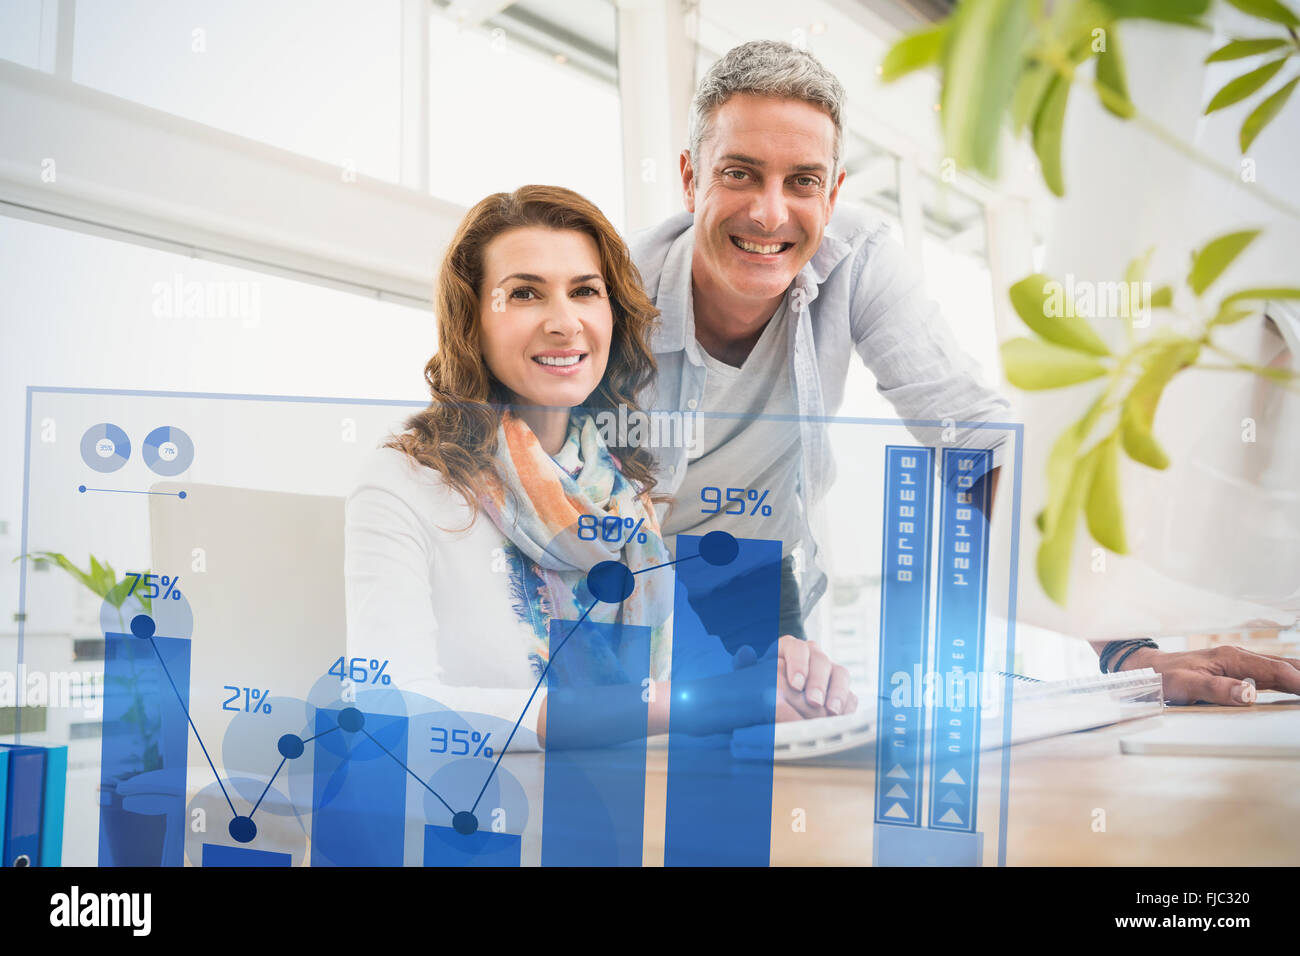 Composite image of percentages graphical representation - Stock Image